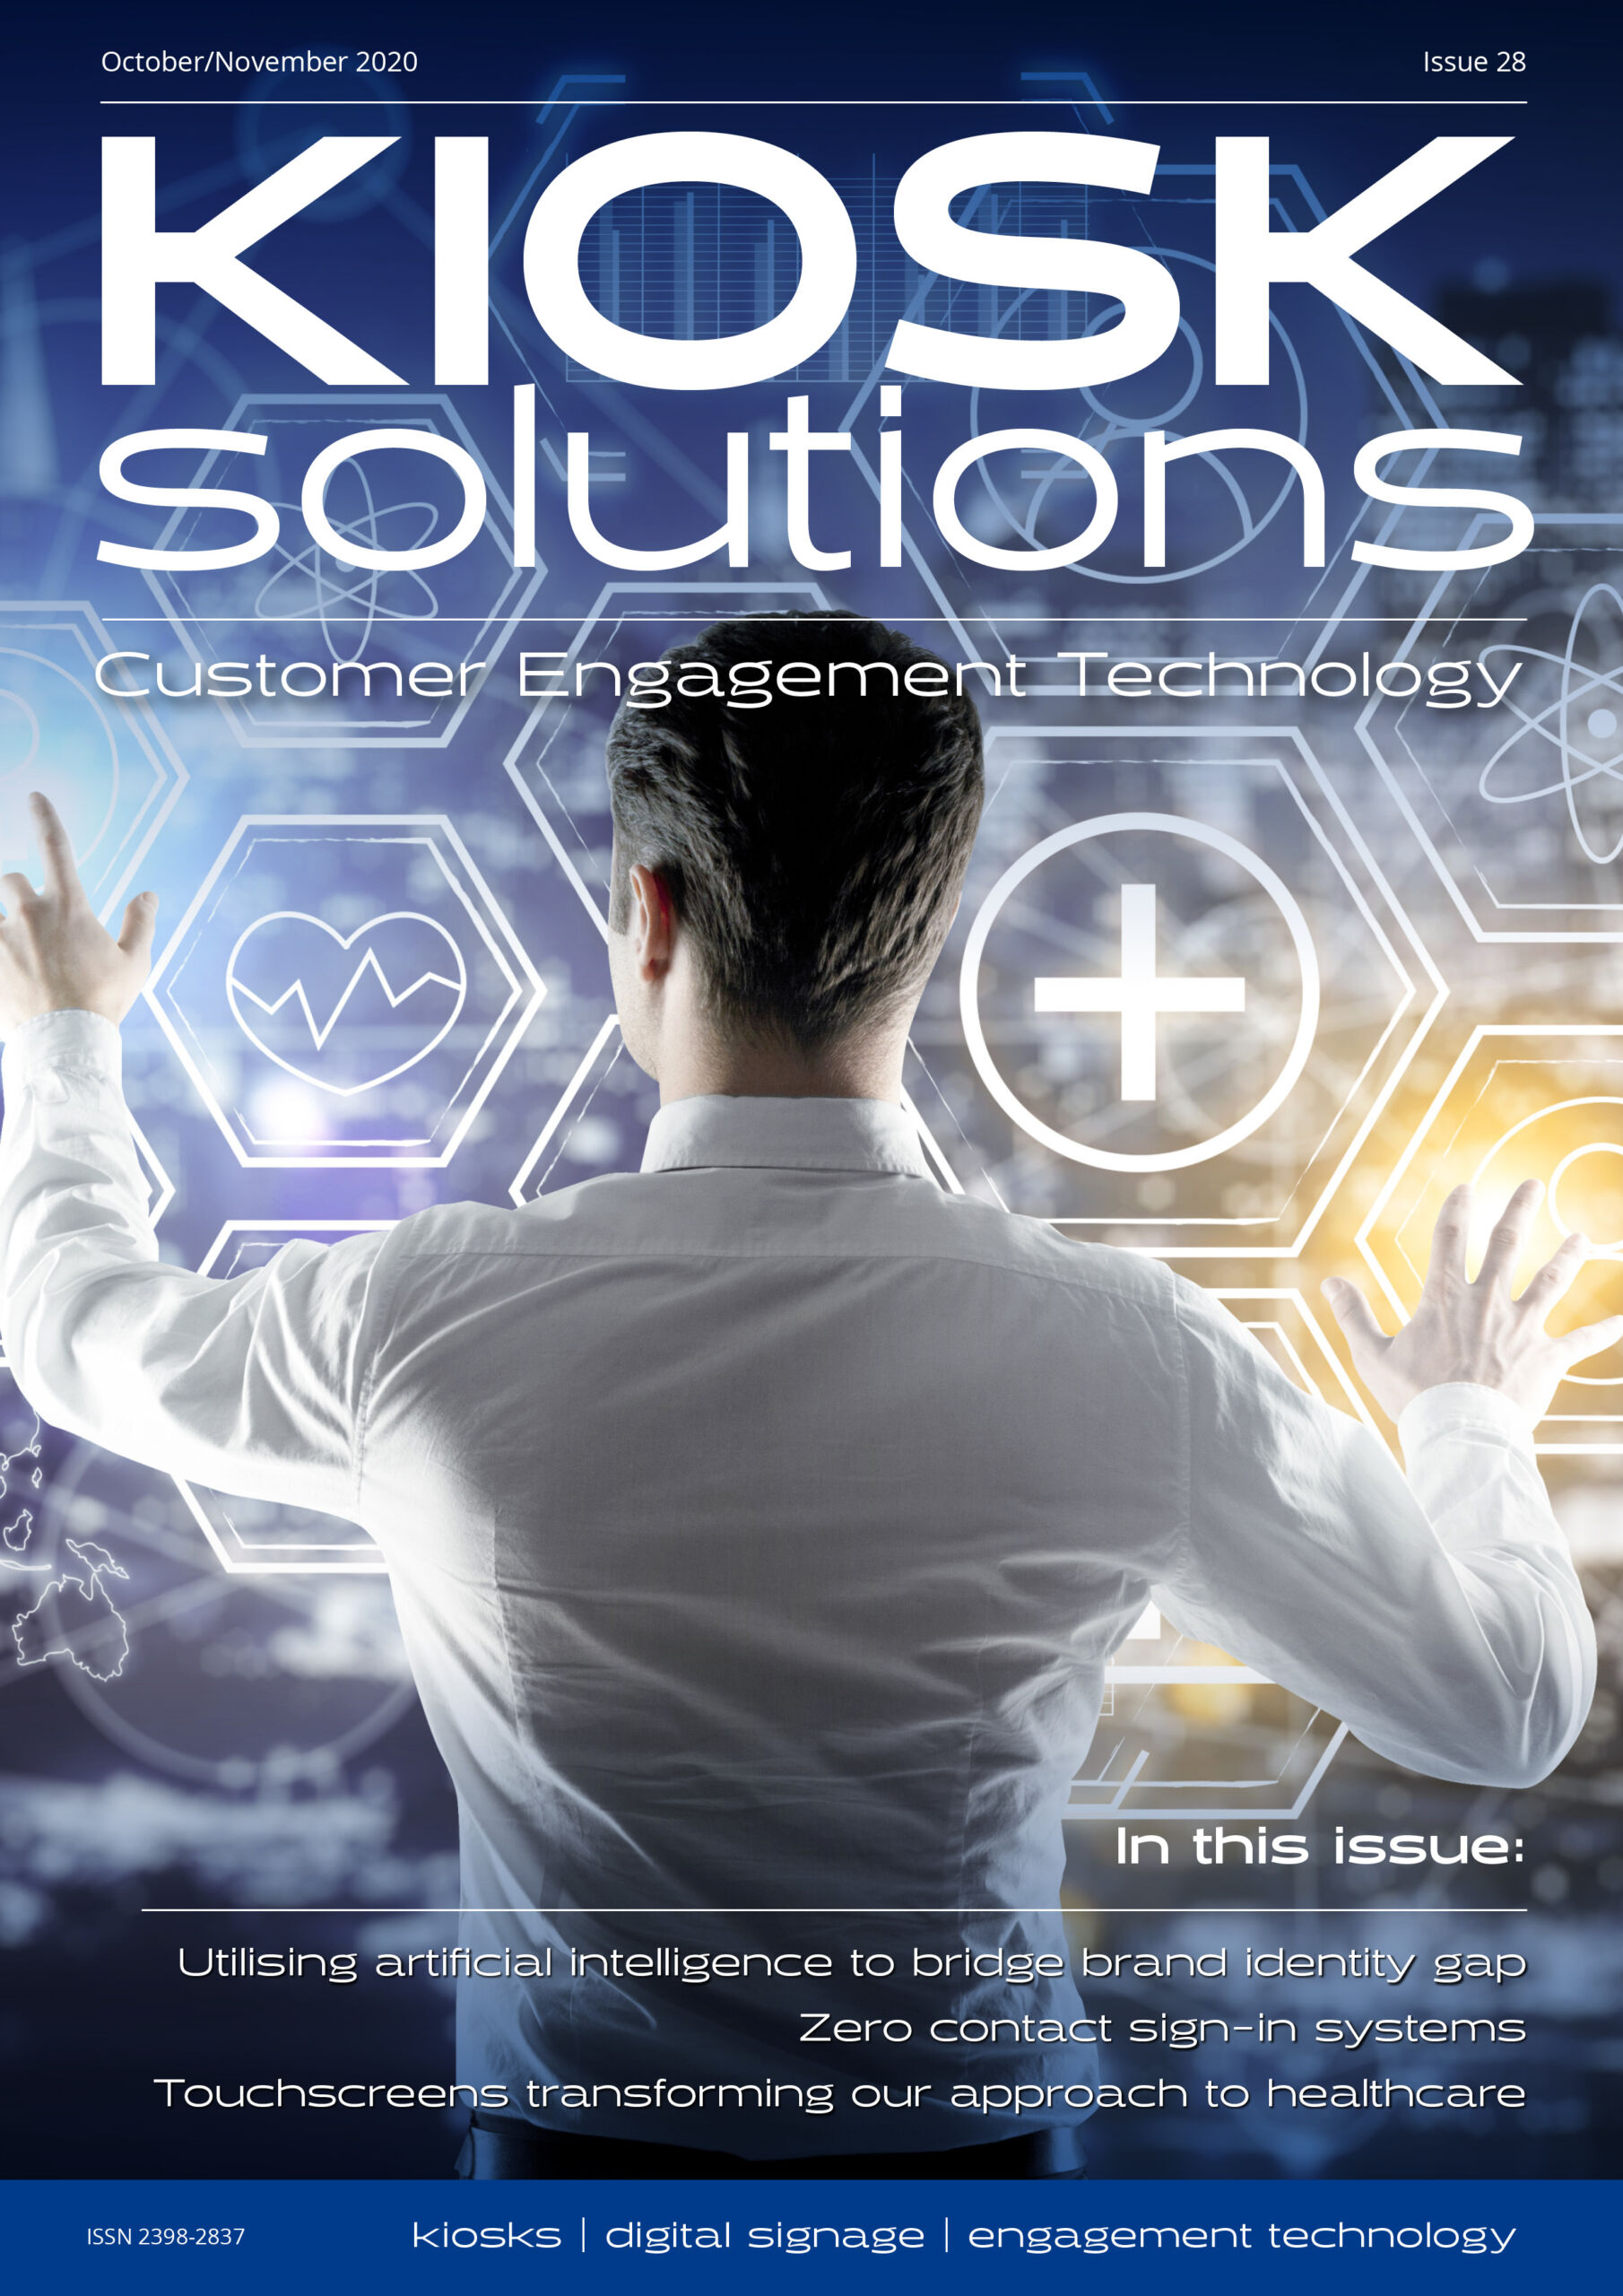 Kiosk Solutions Magazine, October - November 2020 Issue (front cover)